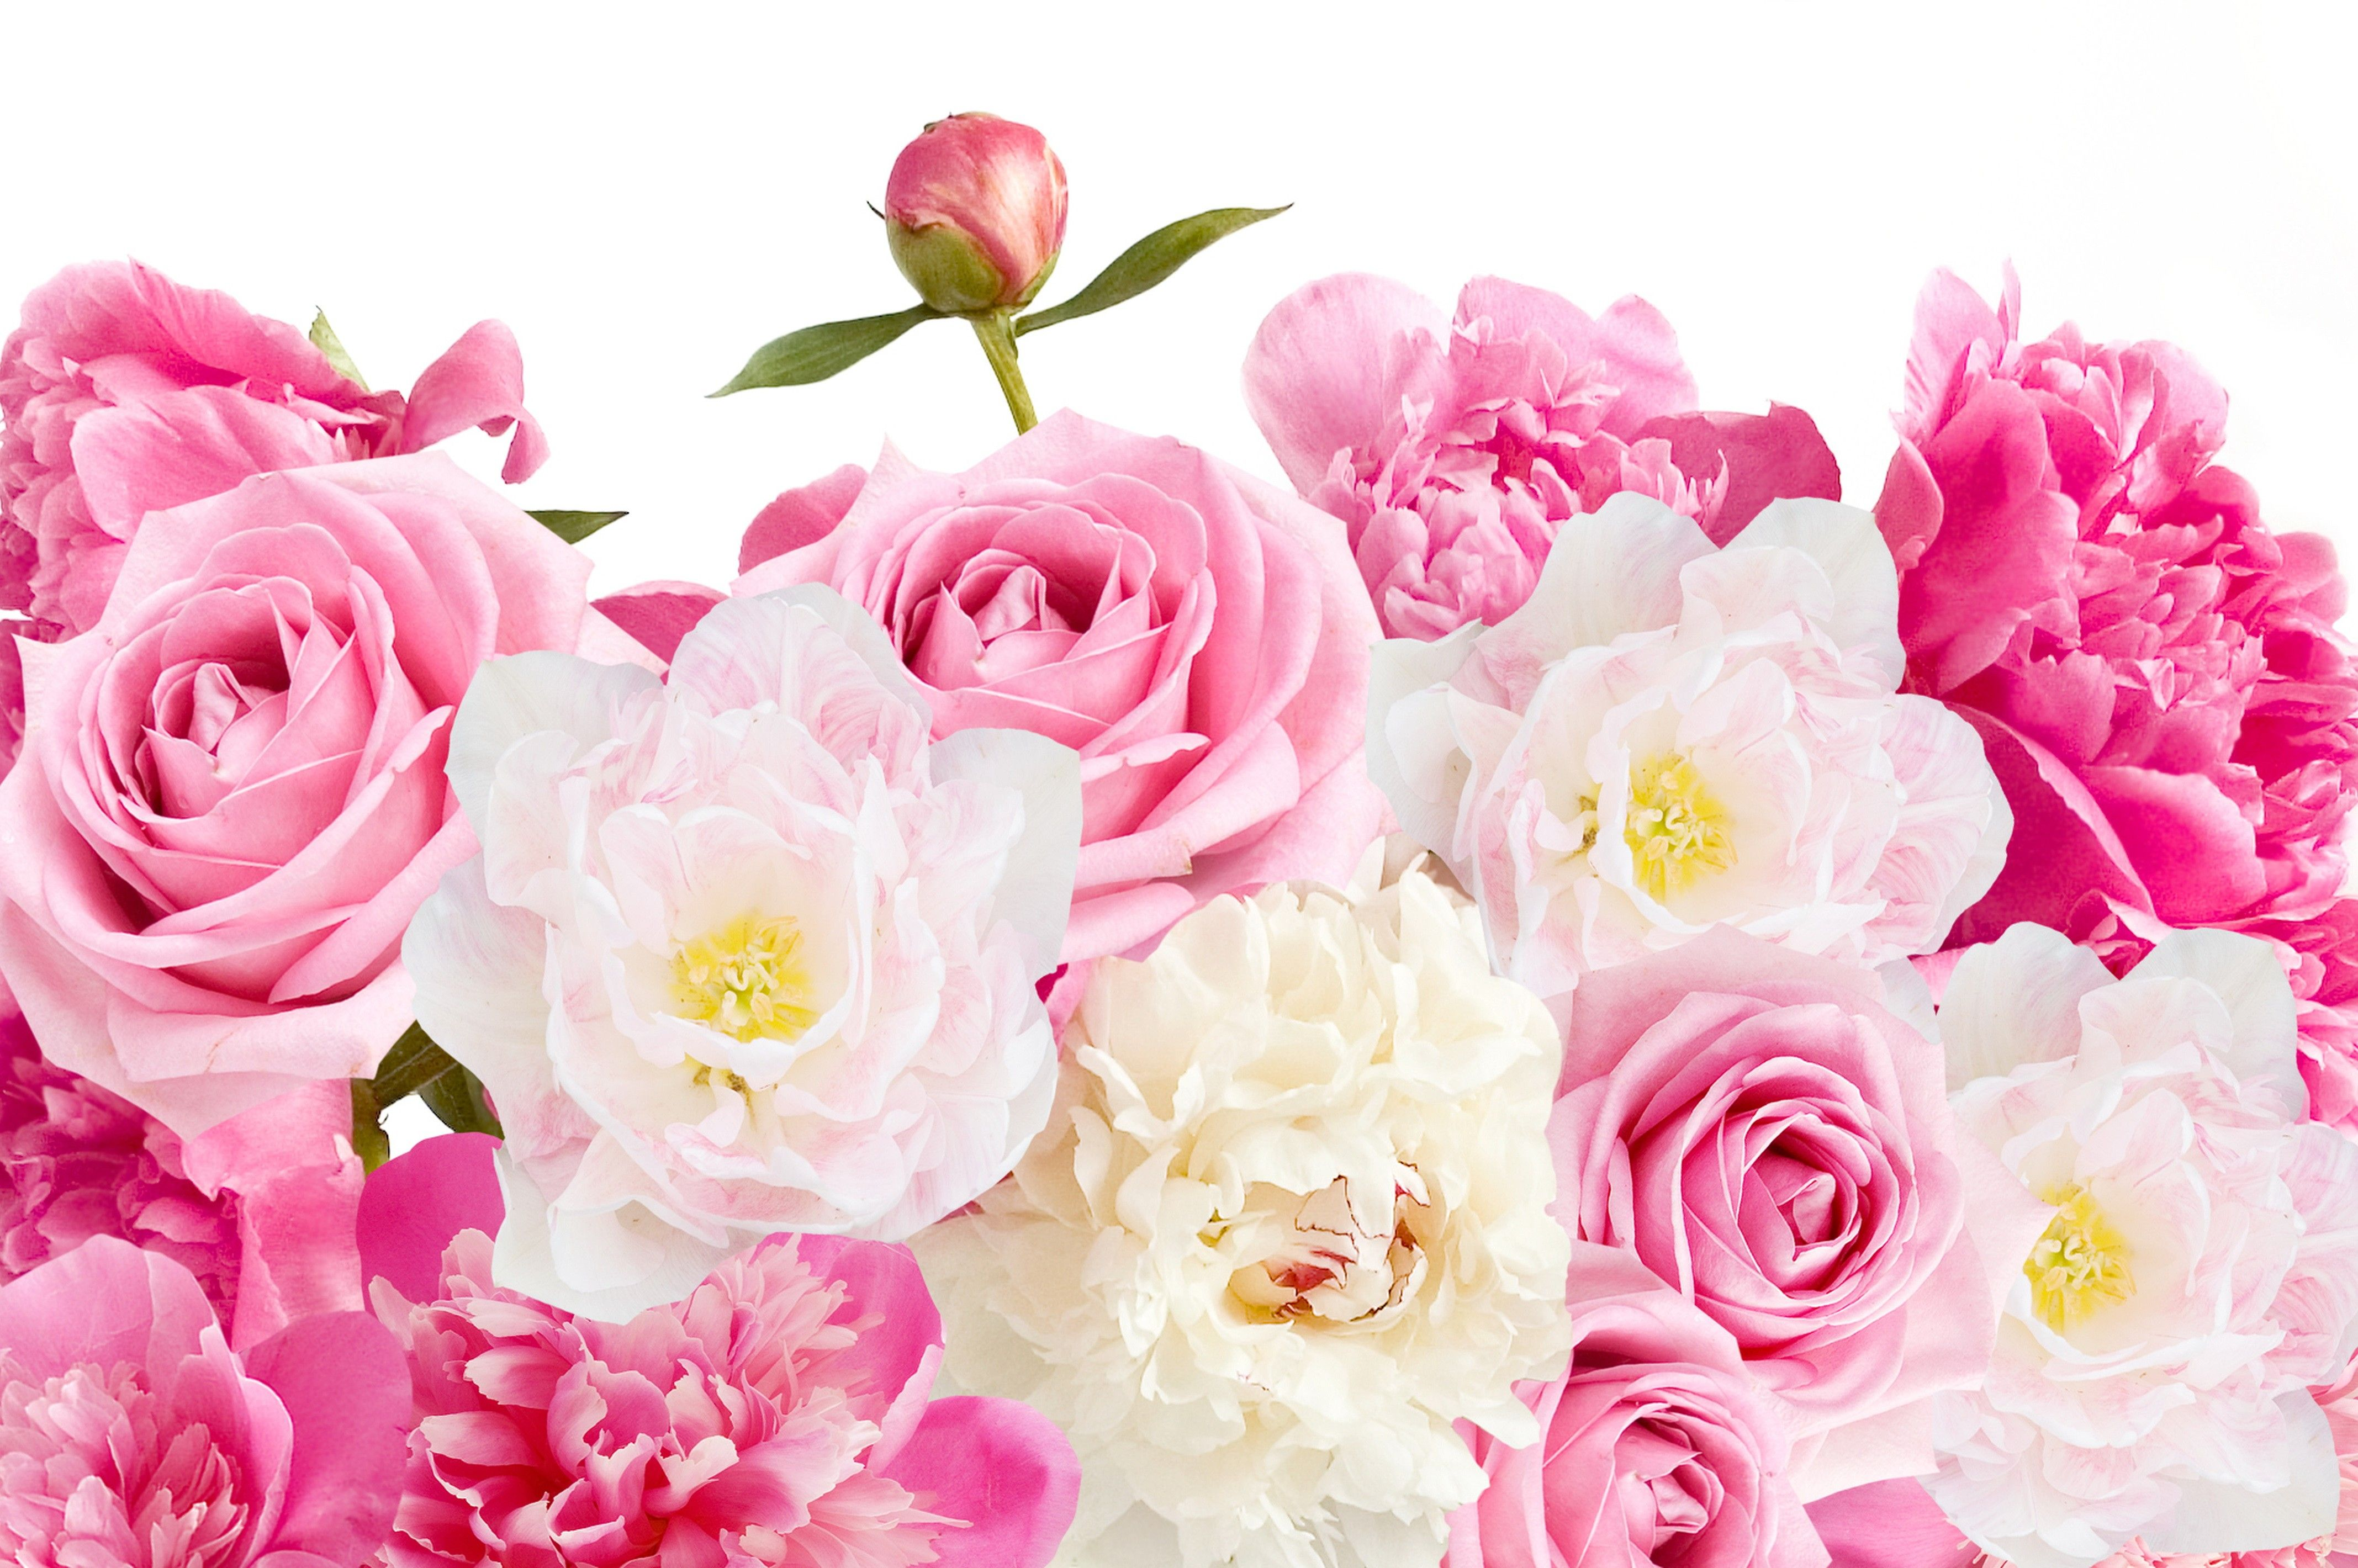 4270x2840 Pink Roses and Peonies 4k Ultra HD Wallpaper | Background Image ...